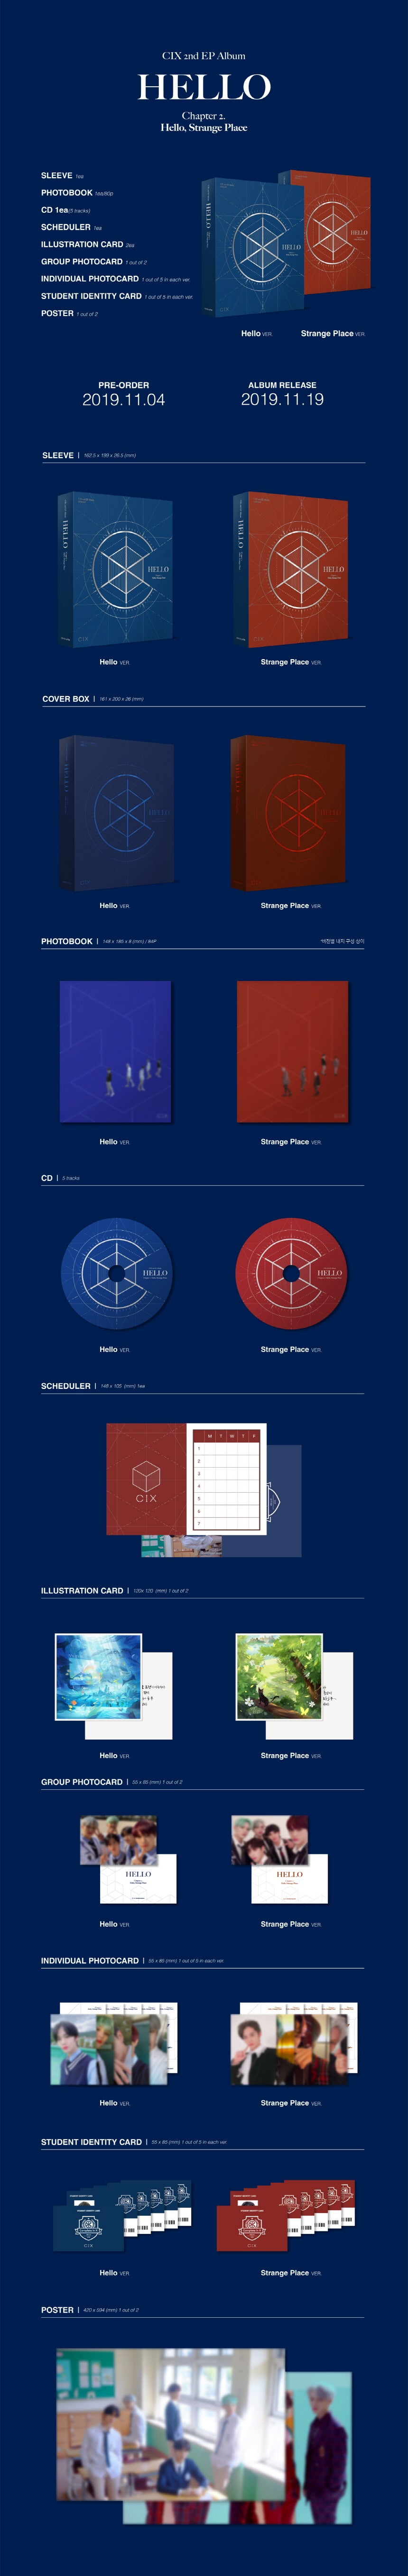 CIX Hello Strange Place 2nd EP Album Kpop SOKOLLAB London